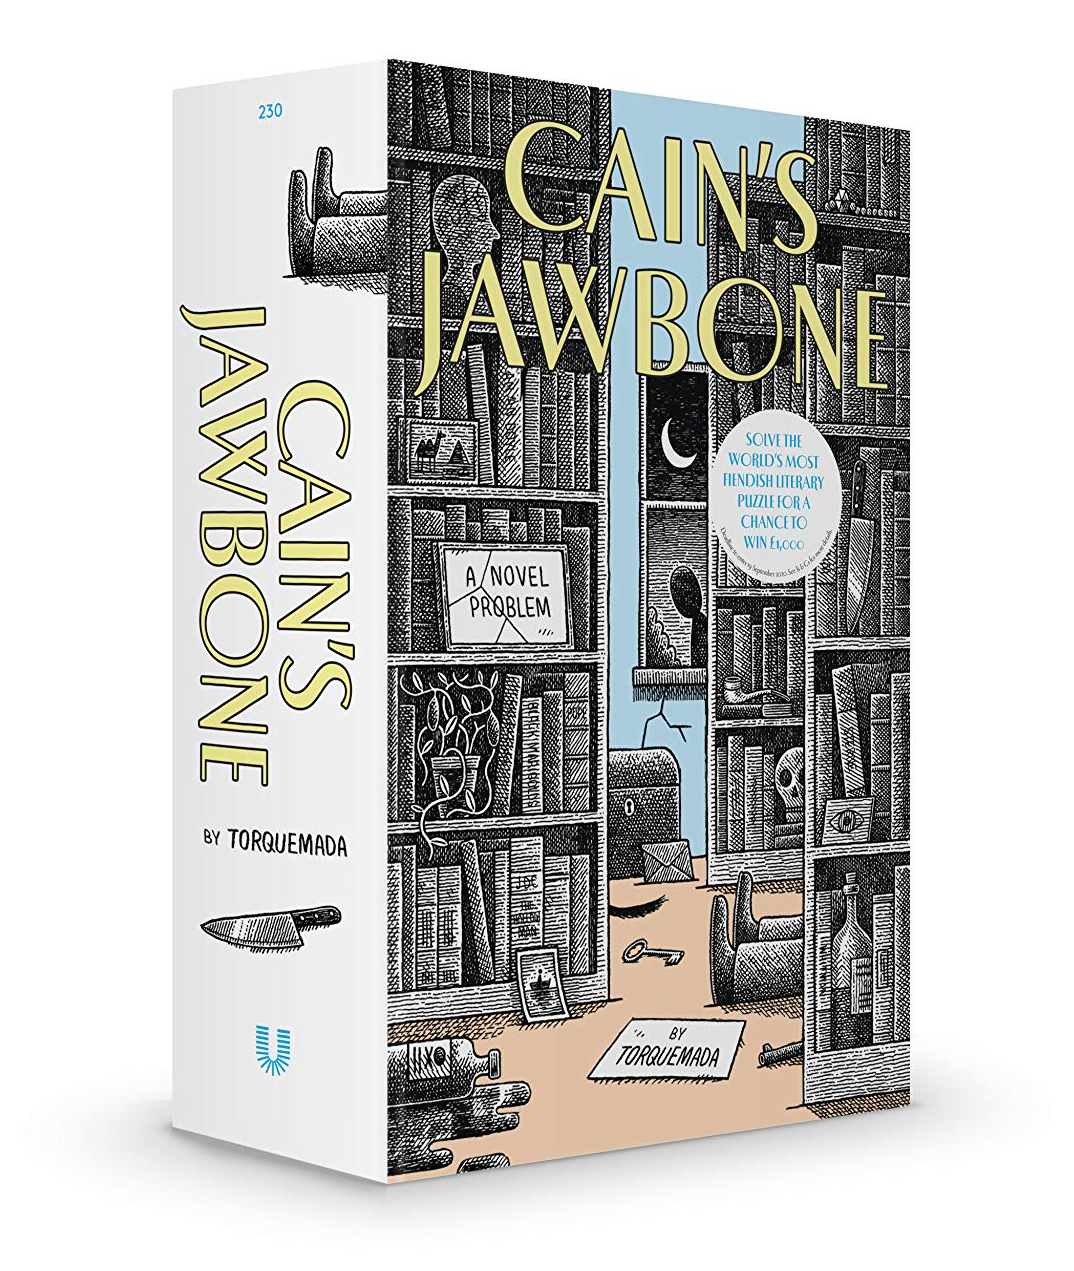 'Cain's Jawbone' as newly published by Unbound